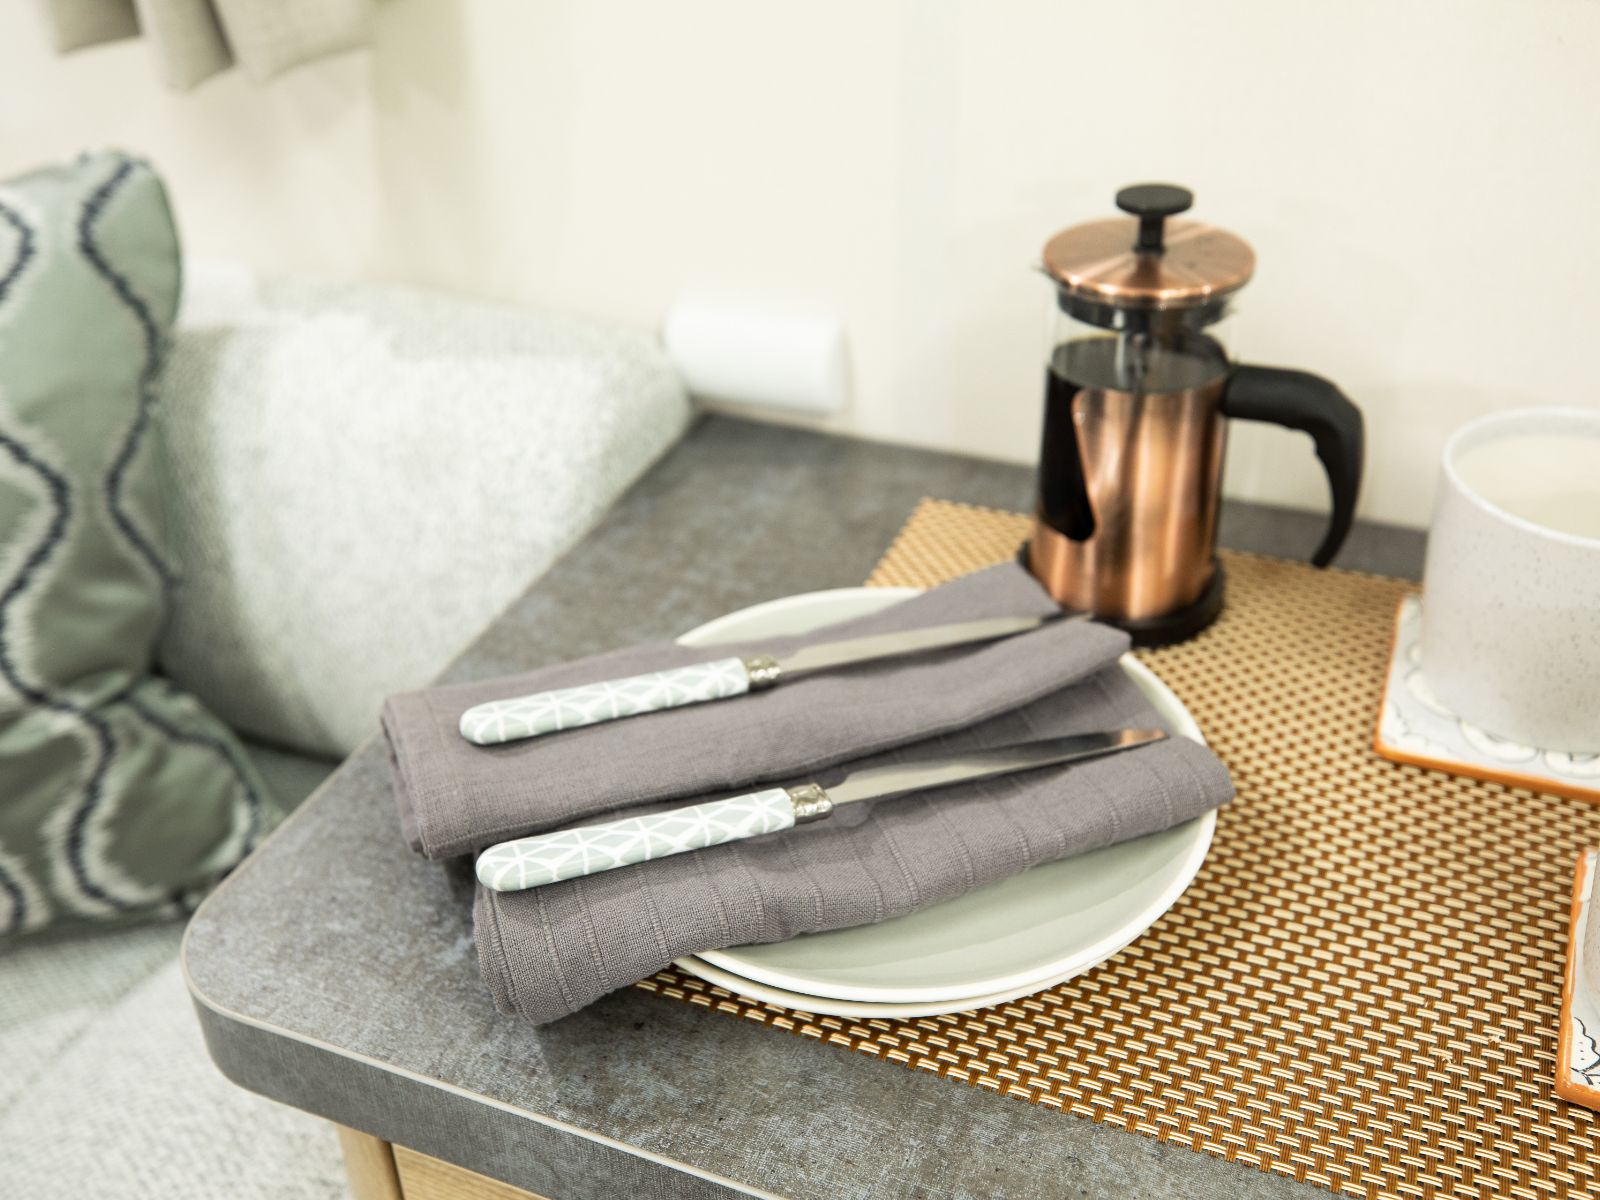 Cutlery and cafetiere on side table'